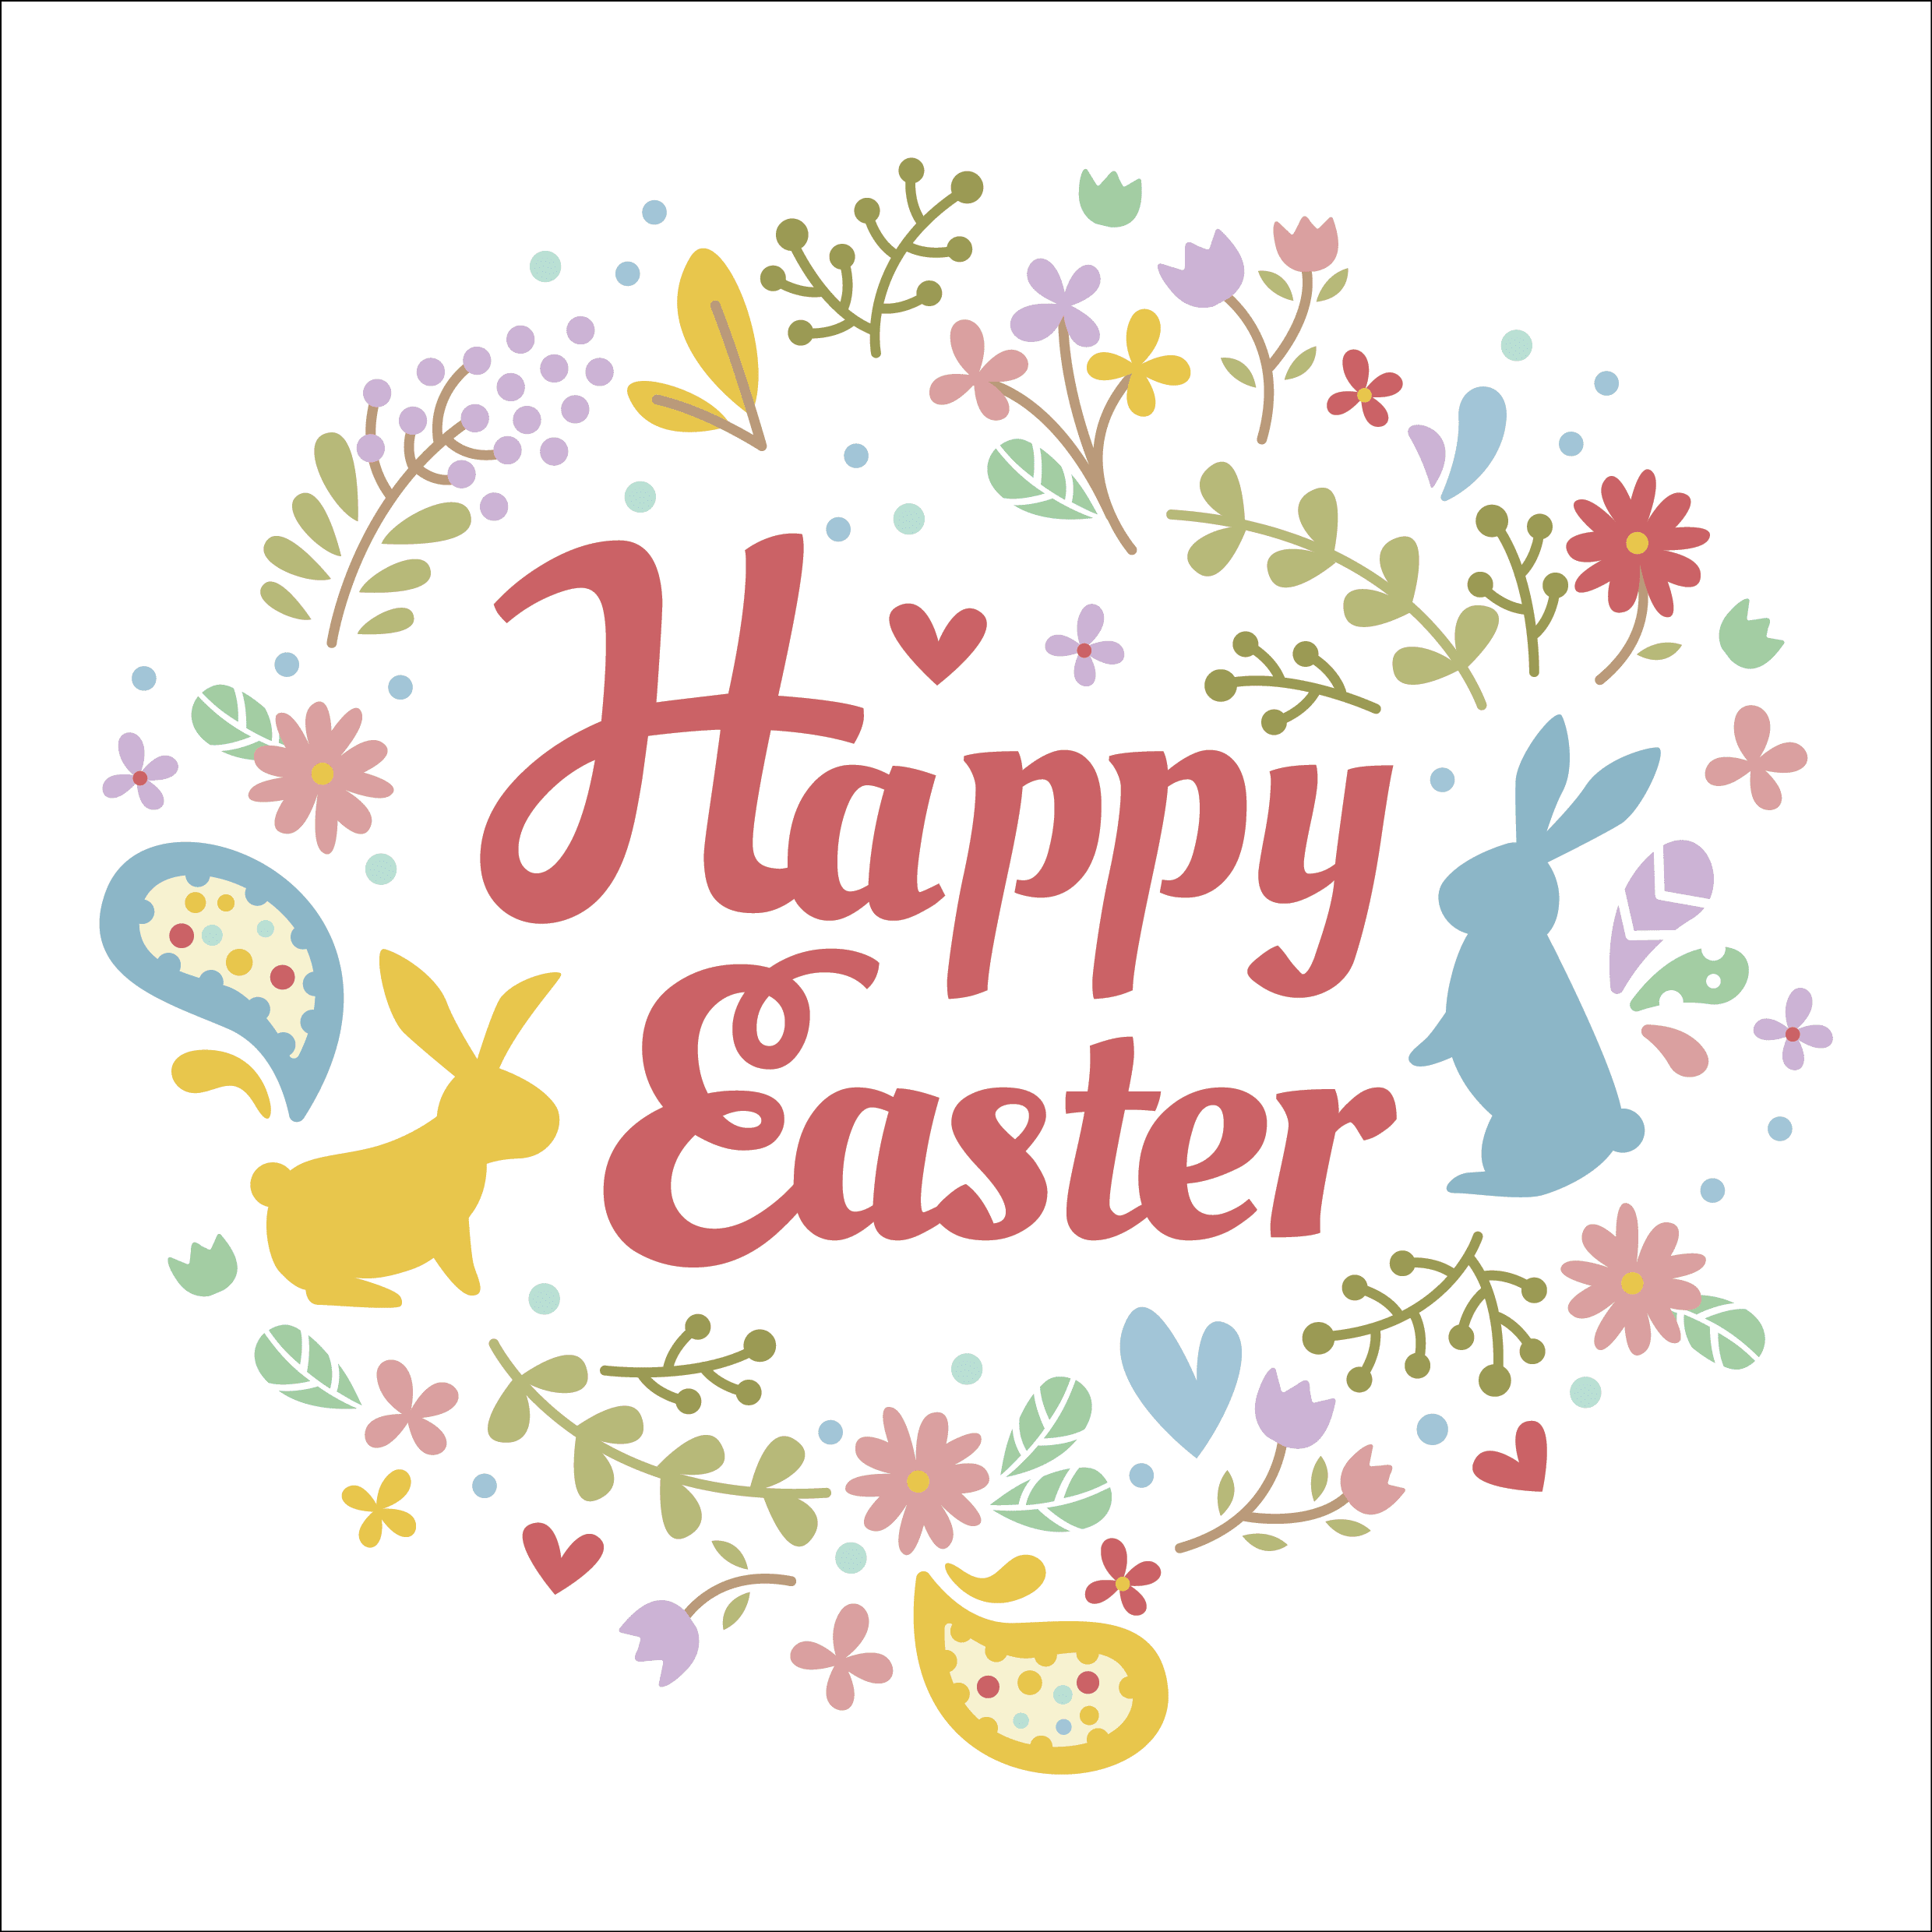 Top 26 Favorite Sites to Send Easter E Cards 2018